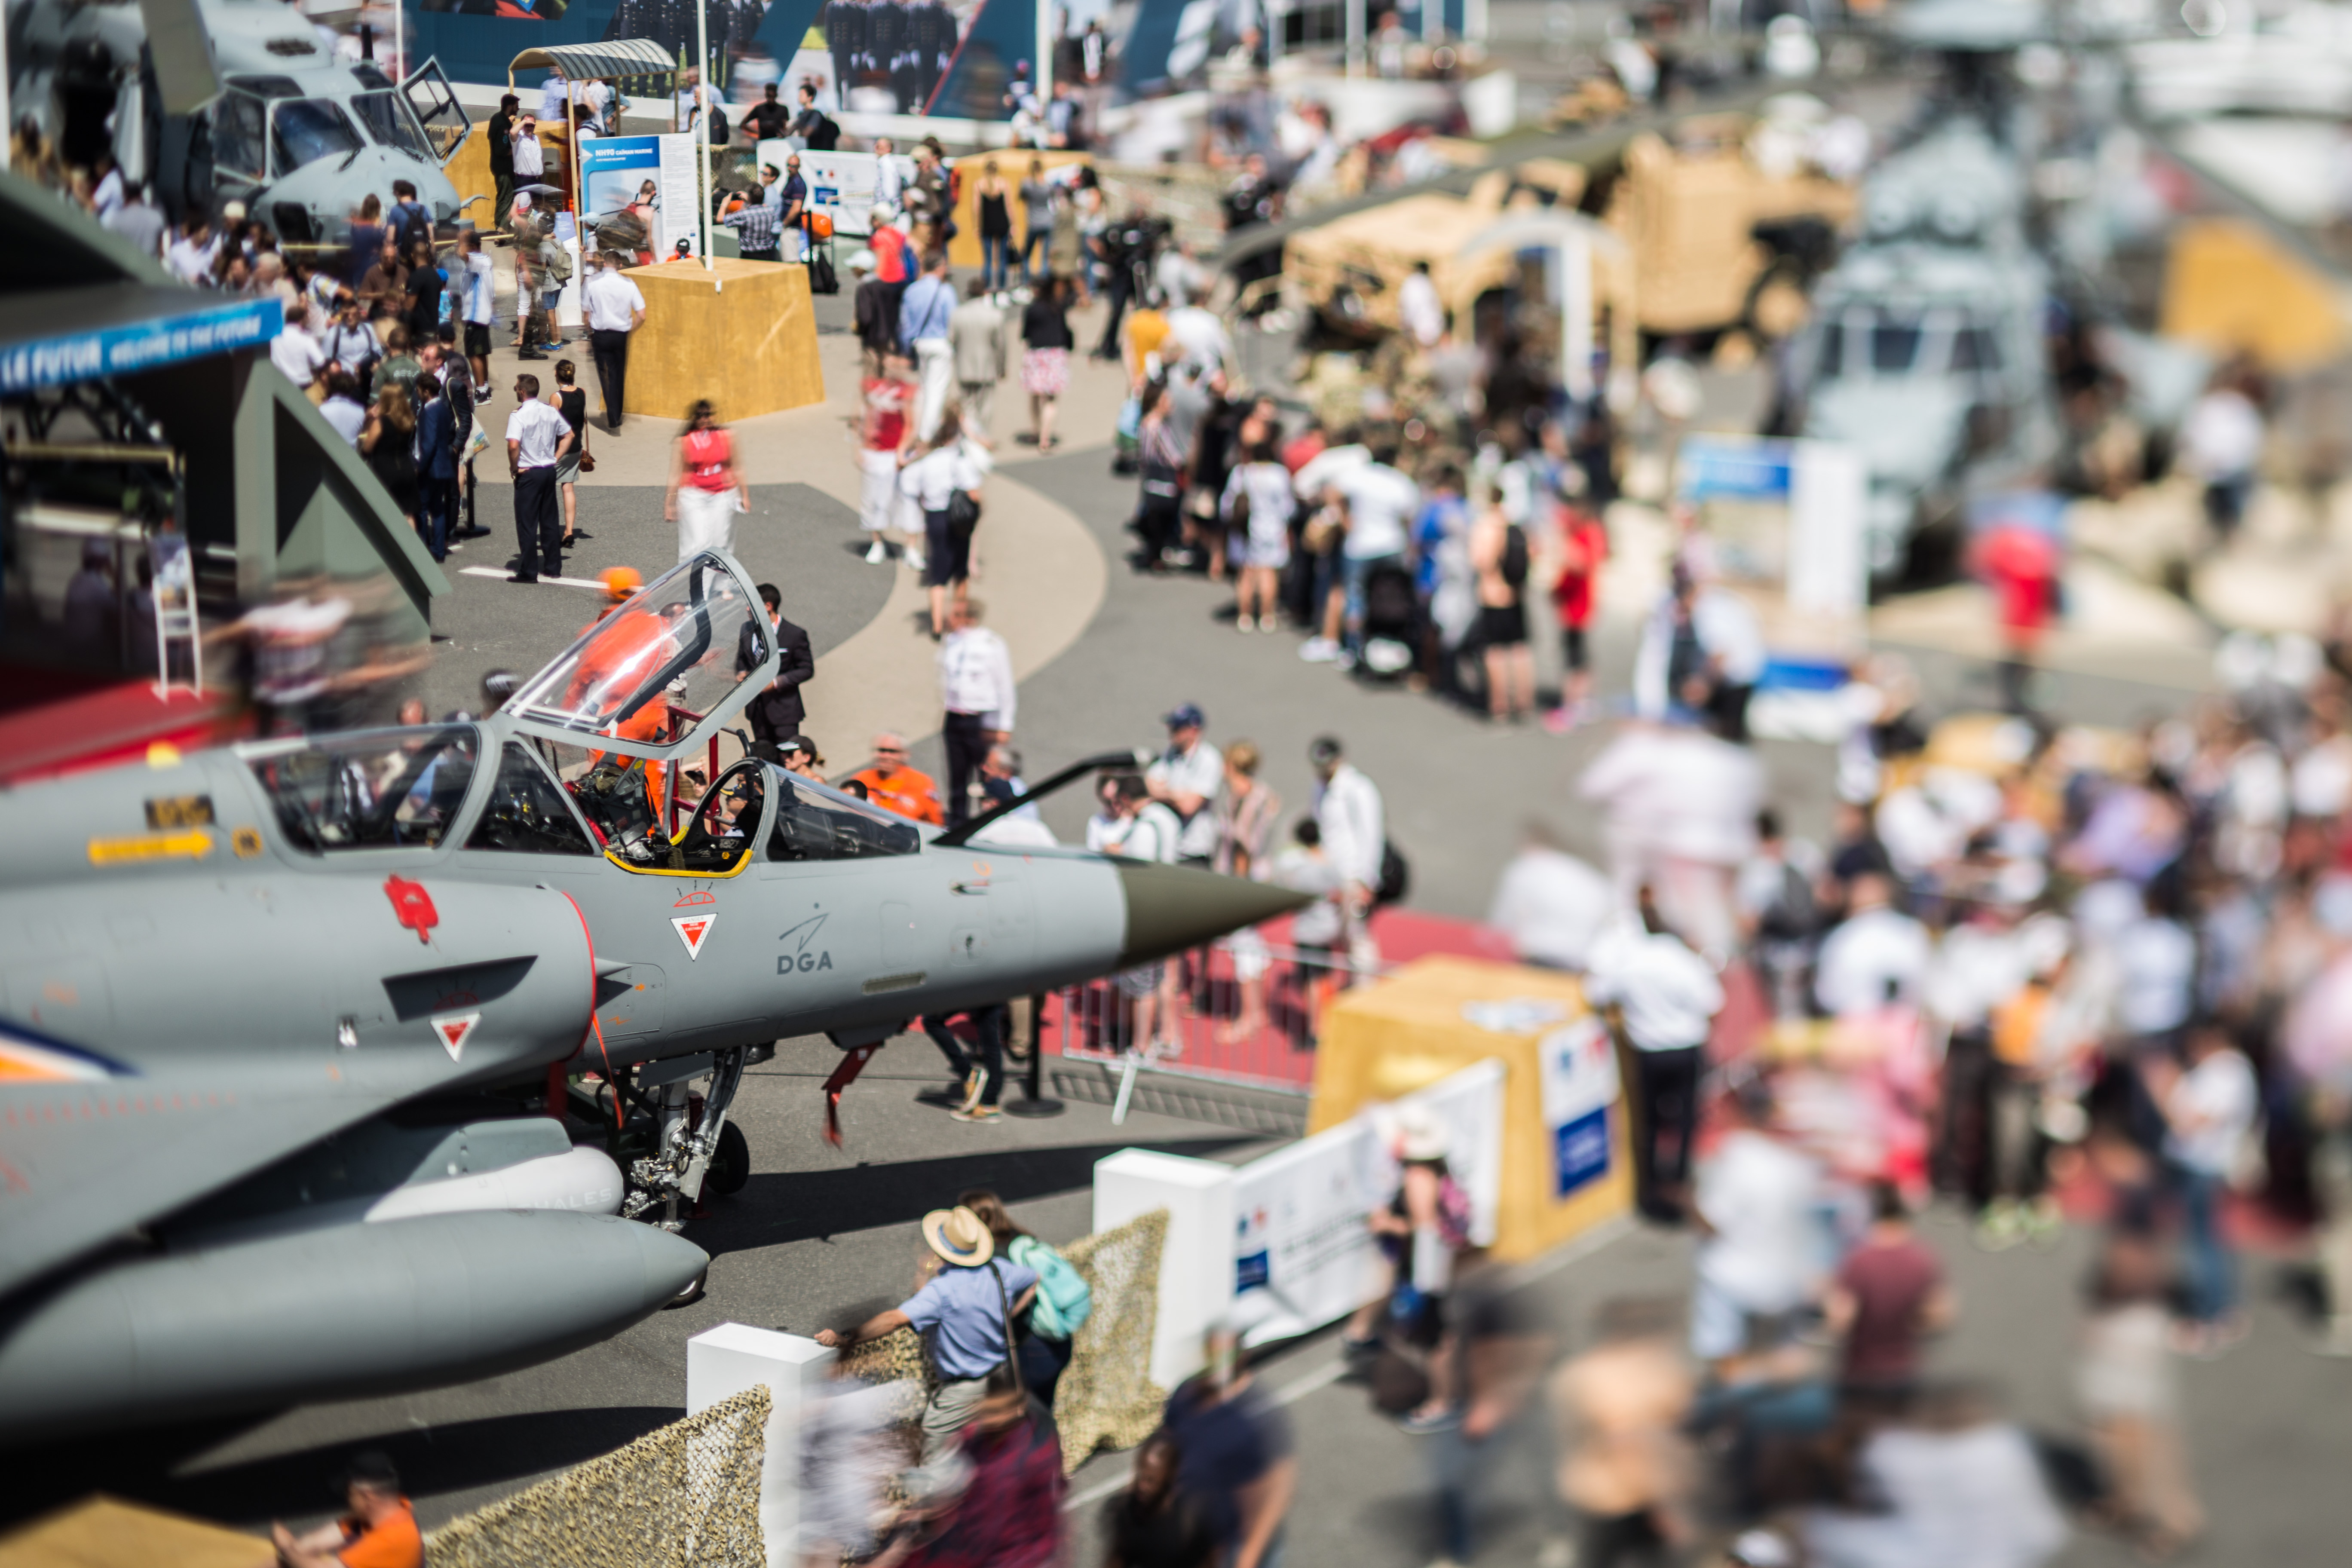 Salon Du Bourget 2017 Tarif Billets Siae 2019